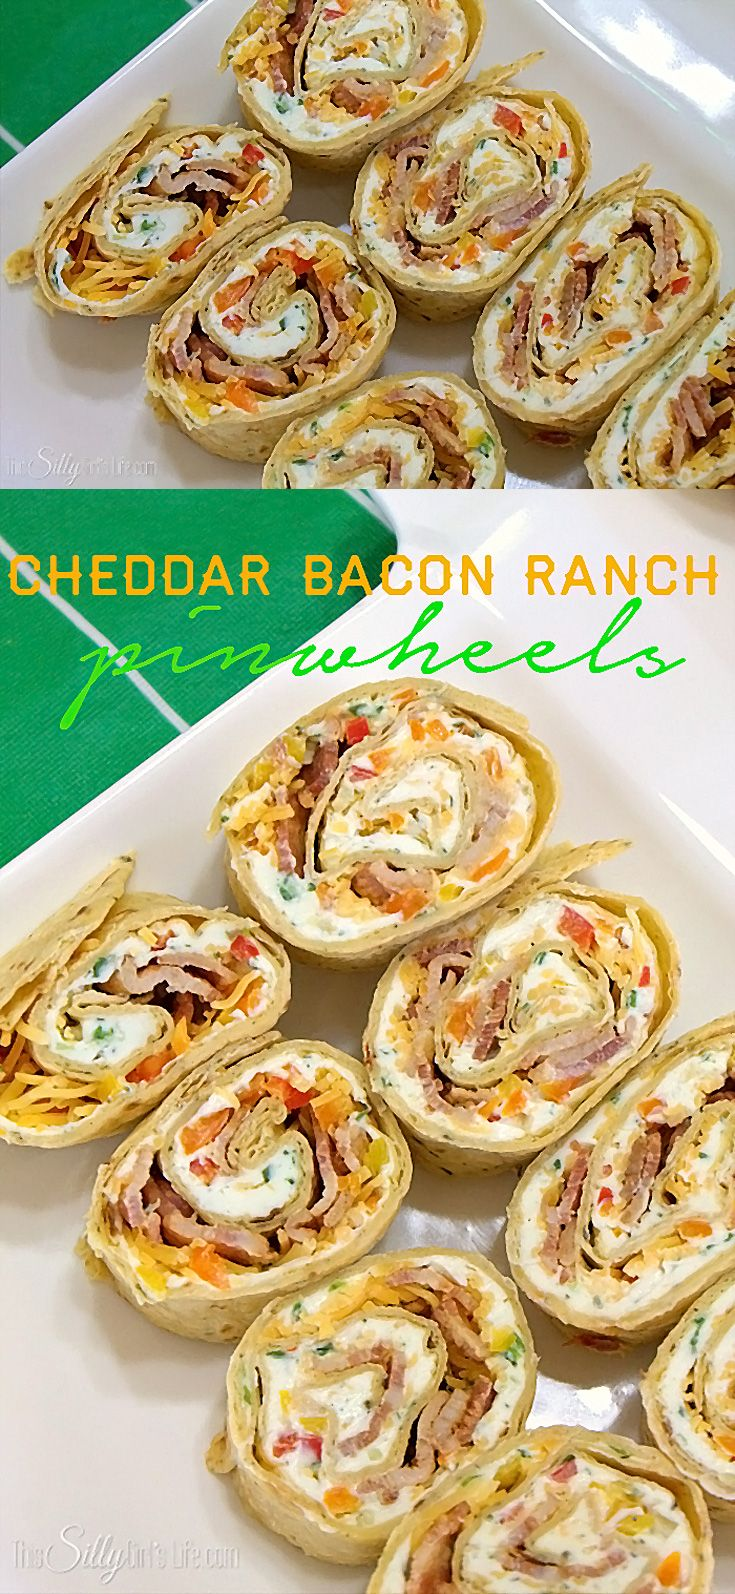 Cheddar Bacon Ranch Pinwheels, tortillas filled with ranch flavored cream cheese, bacon, cheese and more!